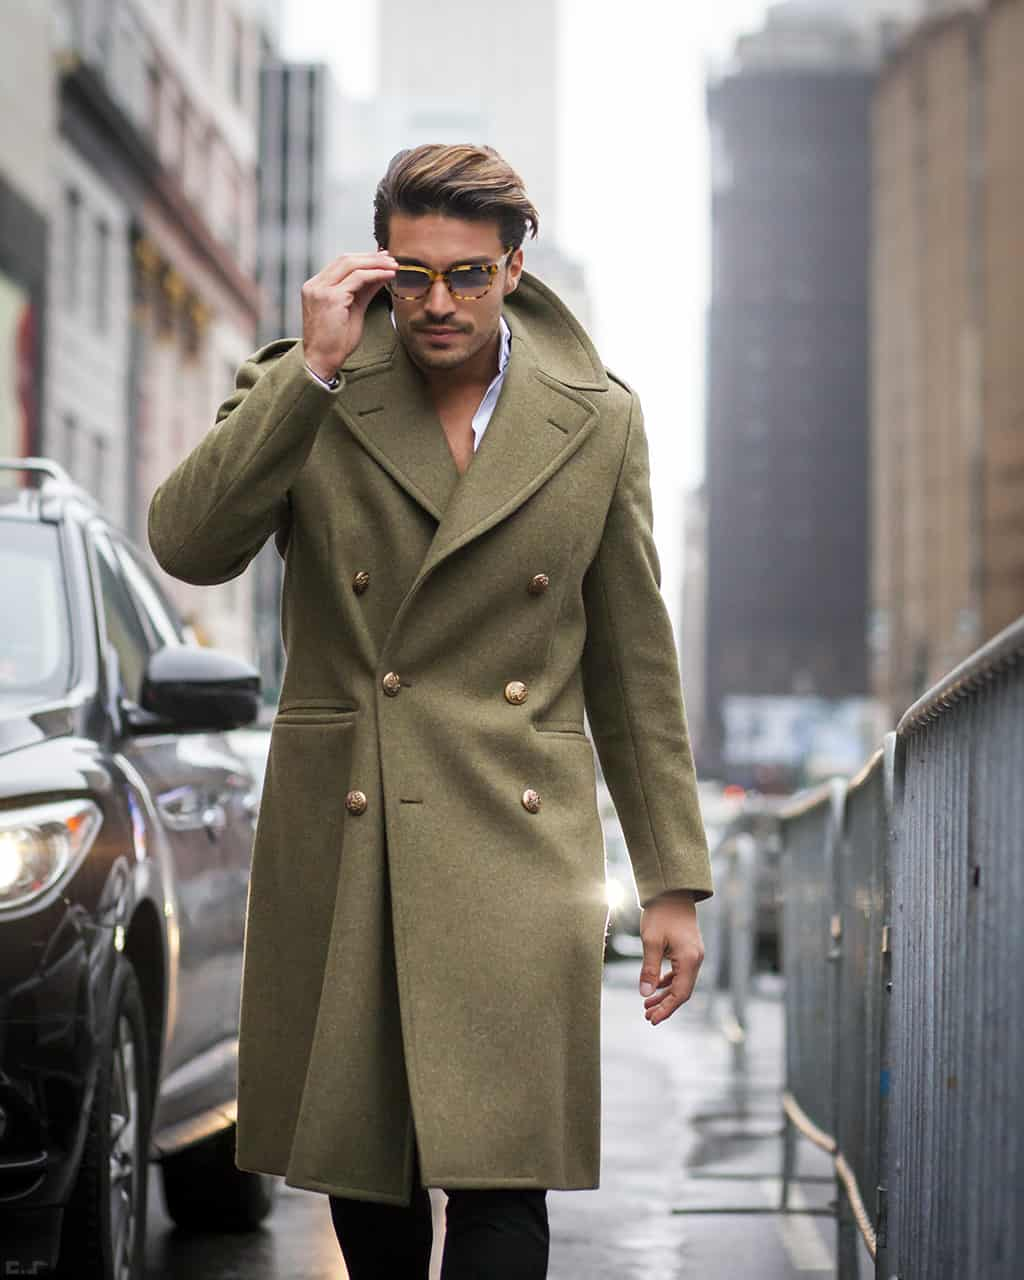 EYEGLASSES Trends 2017: What To Wear? – The Fashion Tag Blog